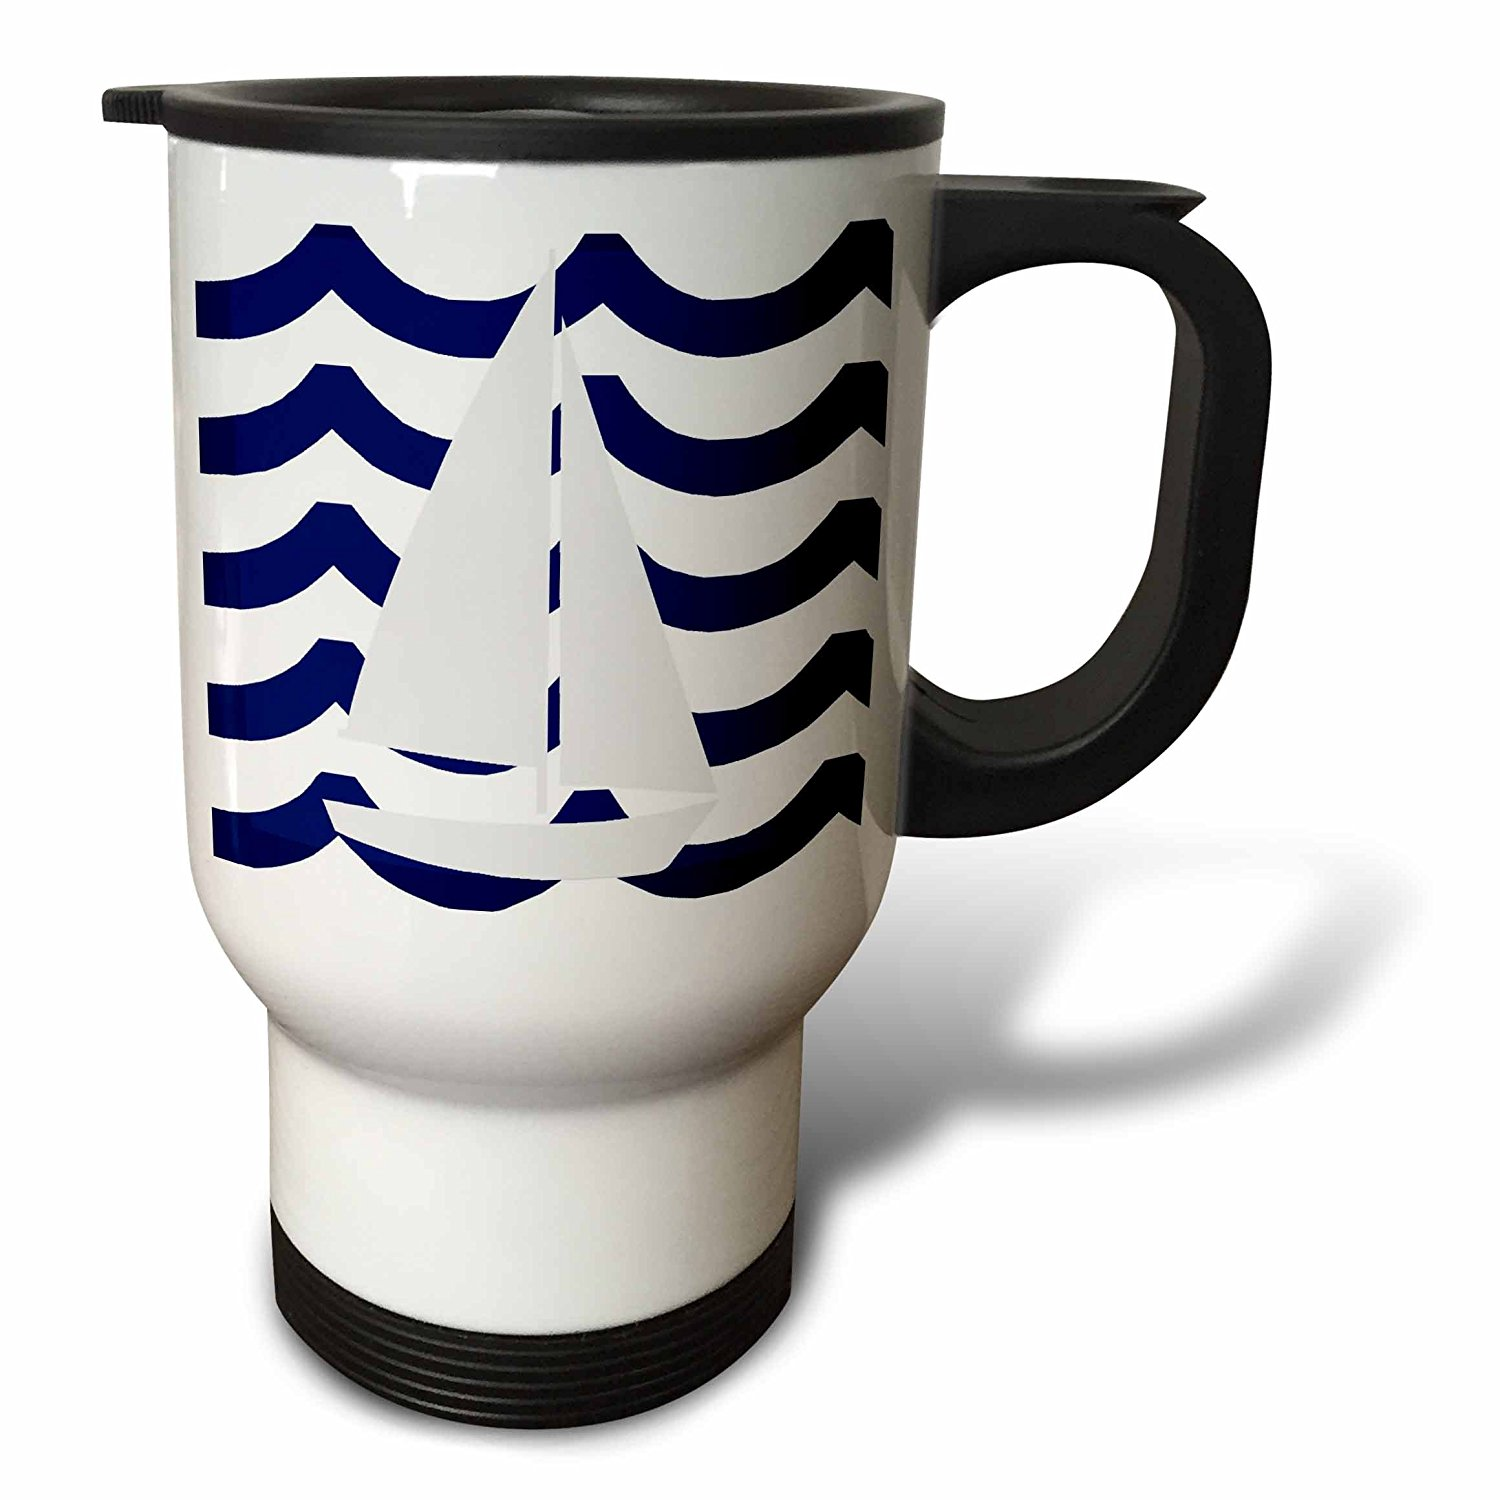 3dRose White Toy Sailboat On Blue Waves, Travel Mug, 14oz, Stainless Steel by 3dRose